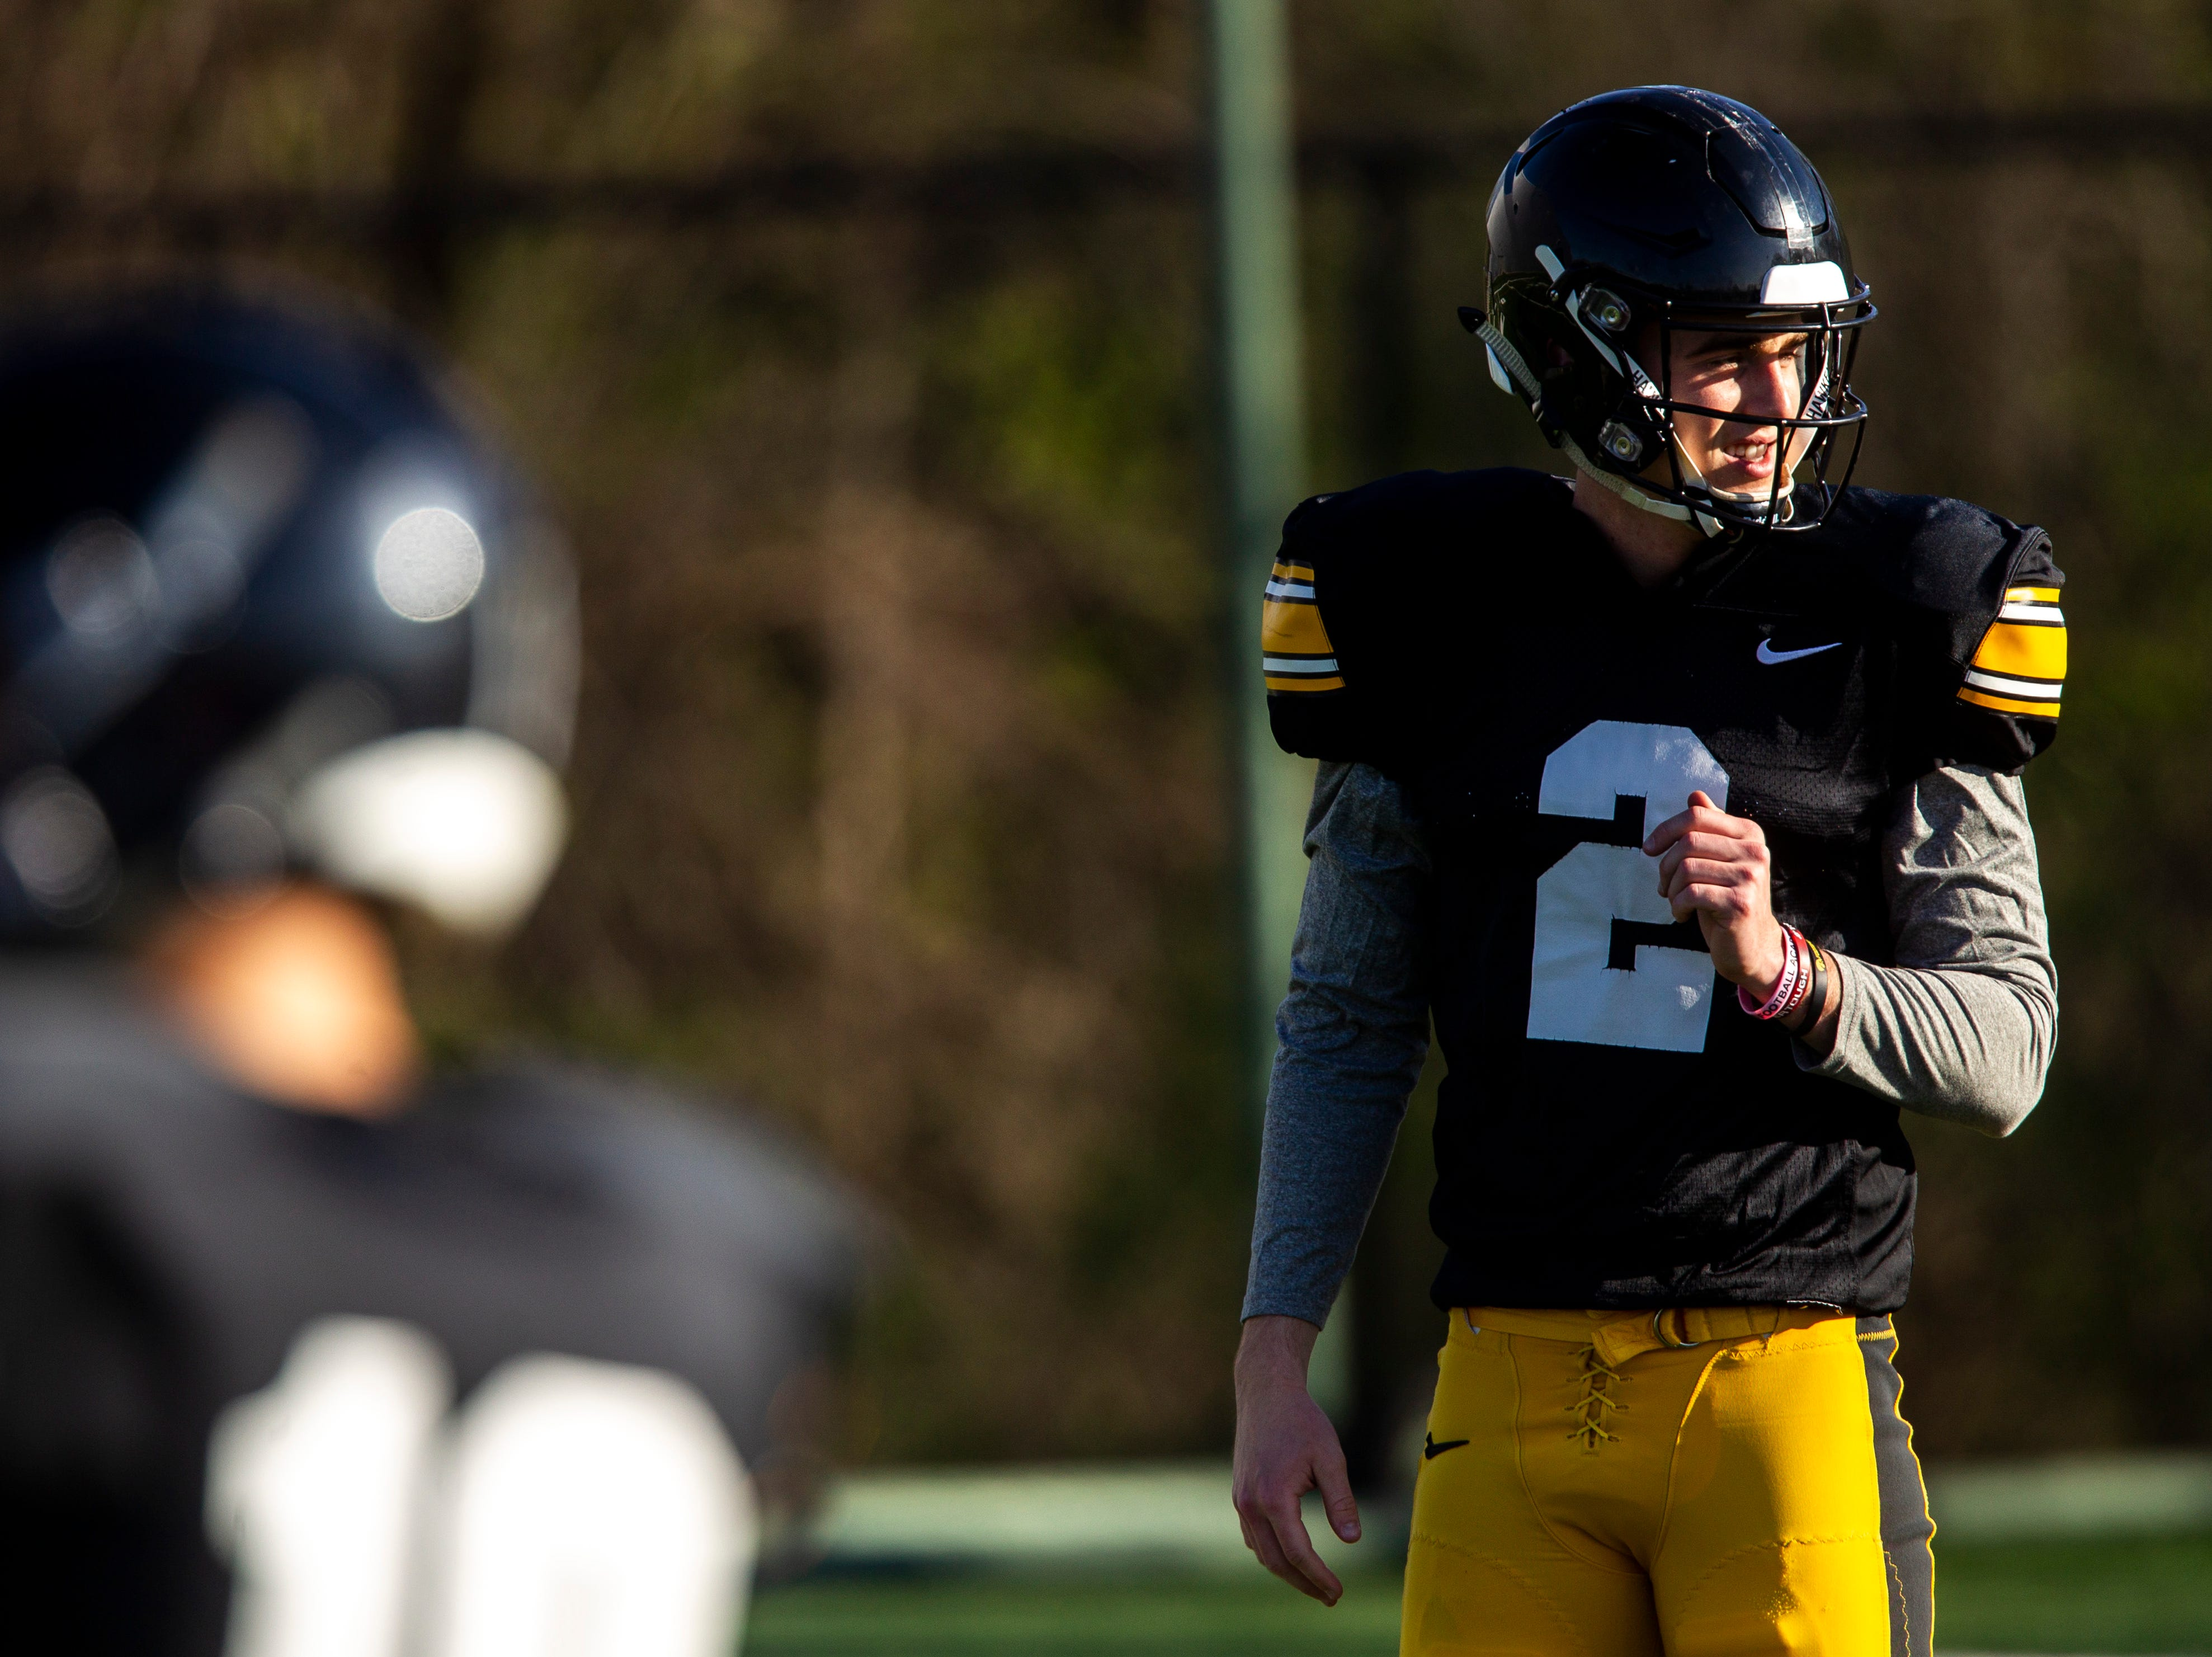 Iowa punter Ryan Gersonde is pictured during the final spring football practice, Friday, April 26, 2019, at the University of Iowa outdoor practice facility in Iowa City, Iowa.